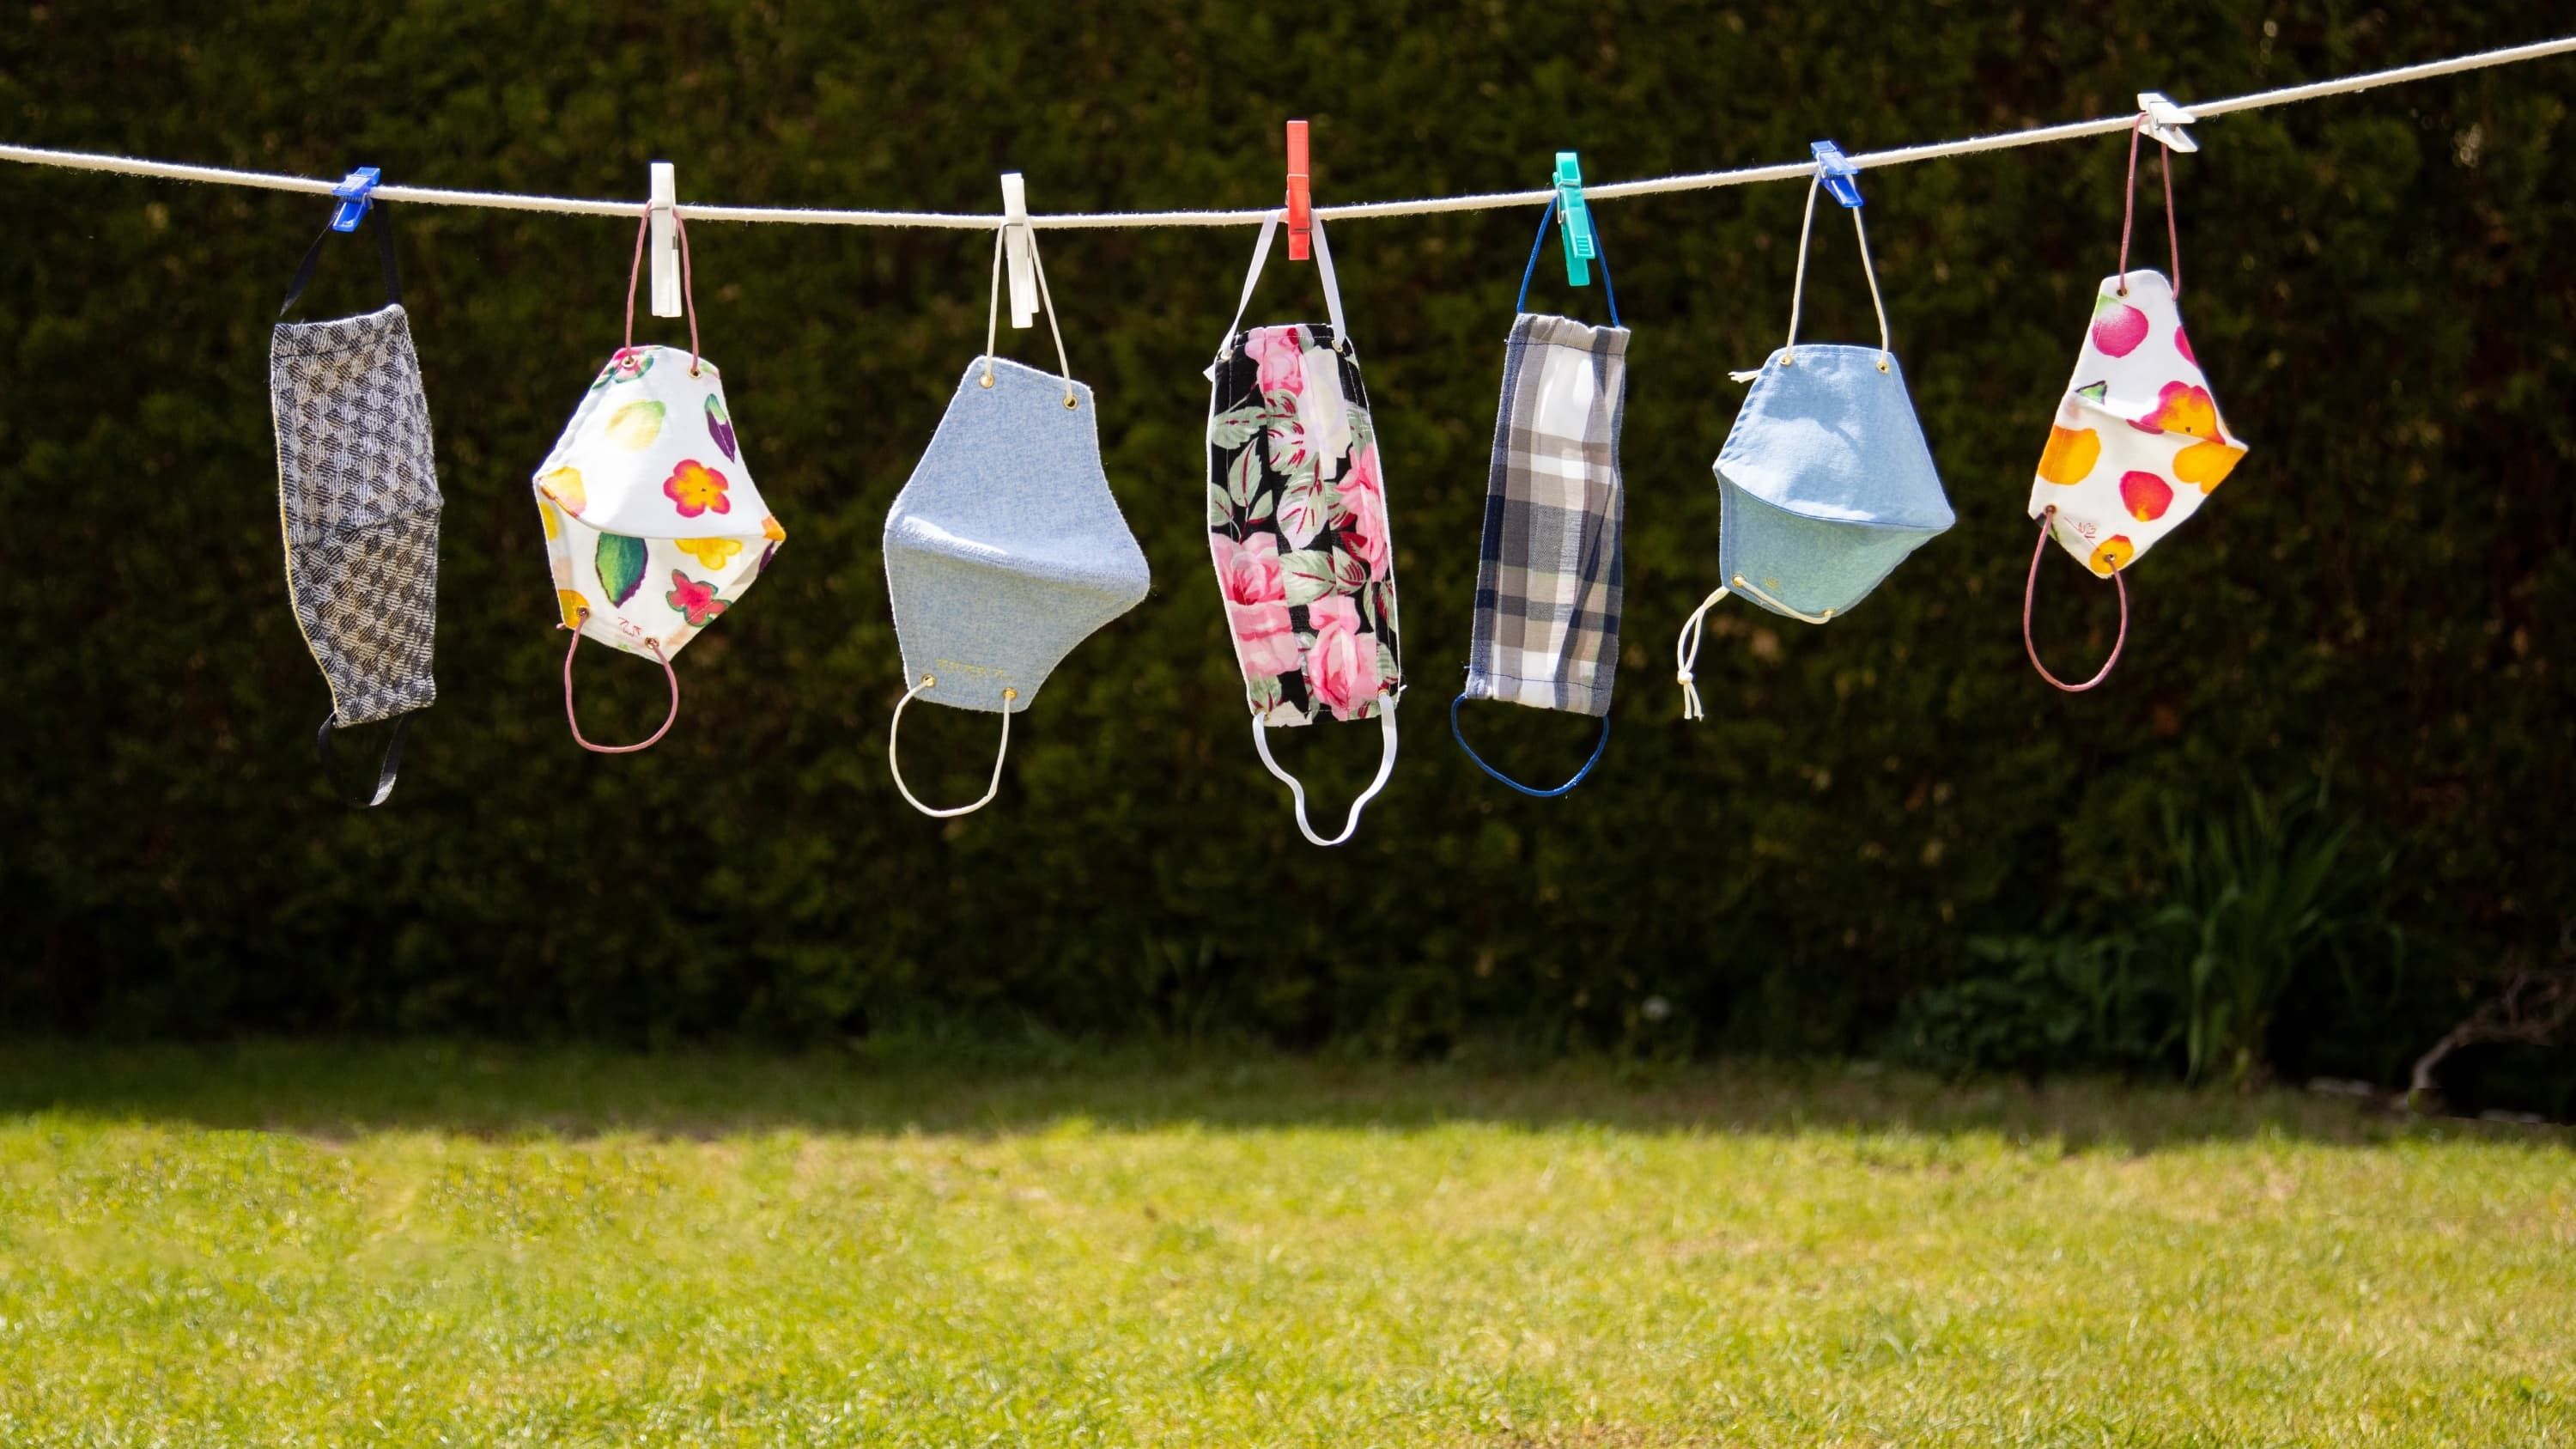 face masks on a clothes line—for more than just COVID-19 protection